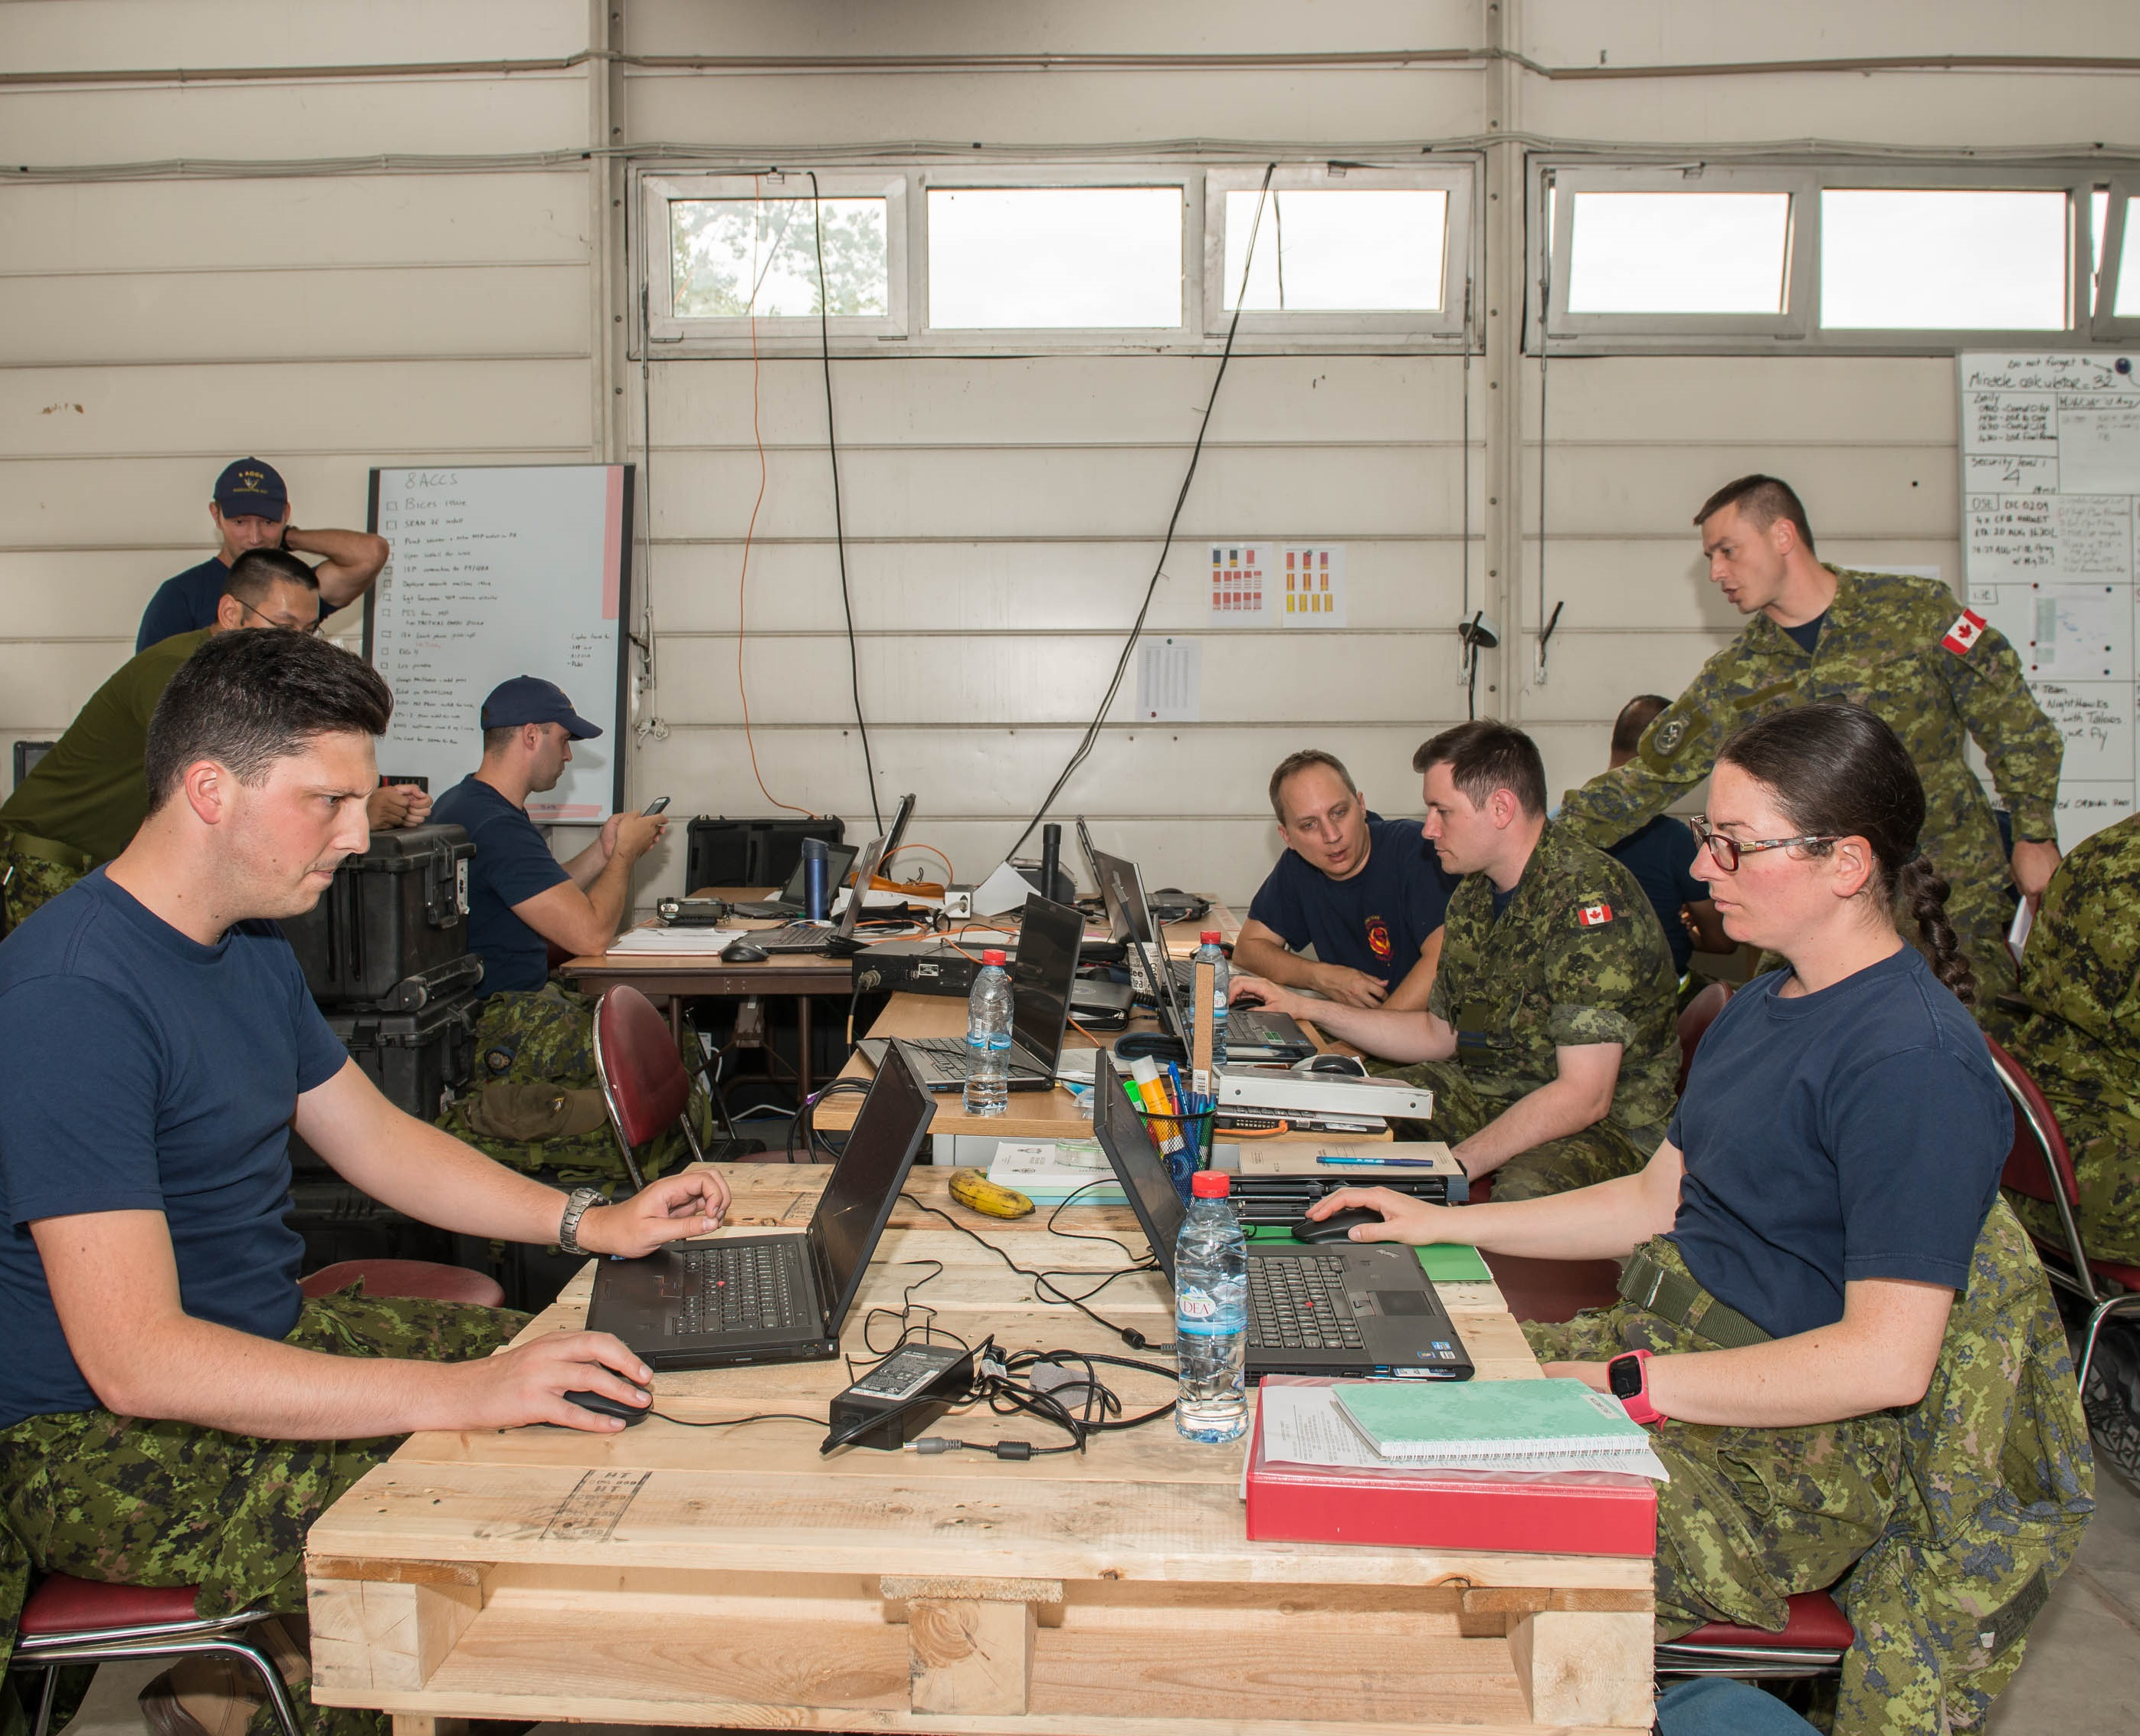 RCAF personnel from 8 8 Air Communication and Control Squadron (8 ACCS) work on setting up a temporary wing operations centre for Air Task Force-Romania at Mihail Kogalniceanu Air Base, Constanta, Romania. 8 ACCS is located at Trenton, Ontario, but is part of 2 Air Expeditionary Wing, which has its headquarters at Bagotville, Quebec. PHOTO: Sergeant Daren Kraus, RP14-2017-0004-03